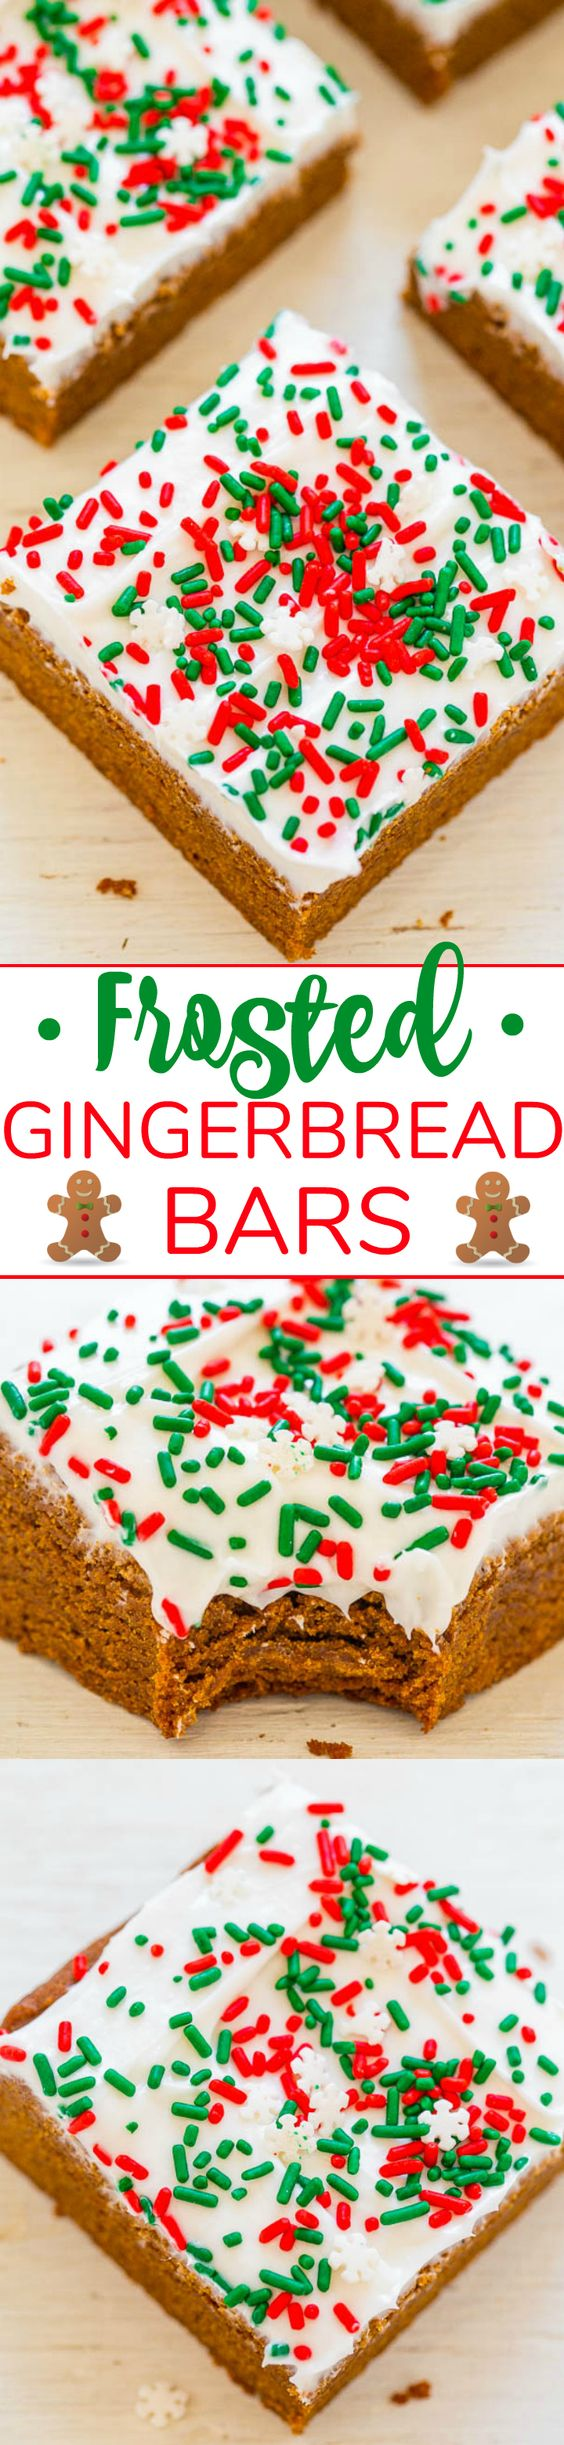 Gingerbread Bars with Cream Cheese Frosting – Gingerbread bars are so much FASTER AND EASIER than making gingerbread cookies!! The sprinkles and tangy cream cheese frosting will put everyone in a festive mood!!